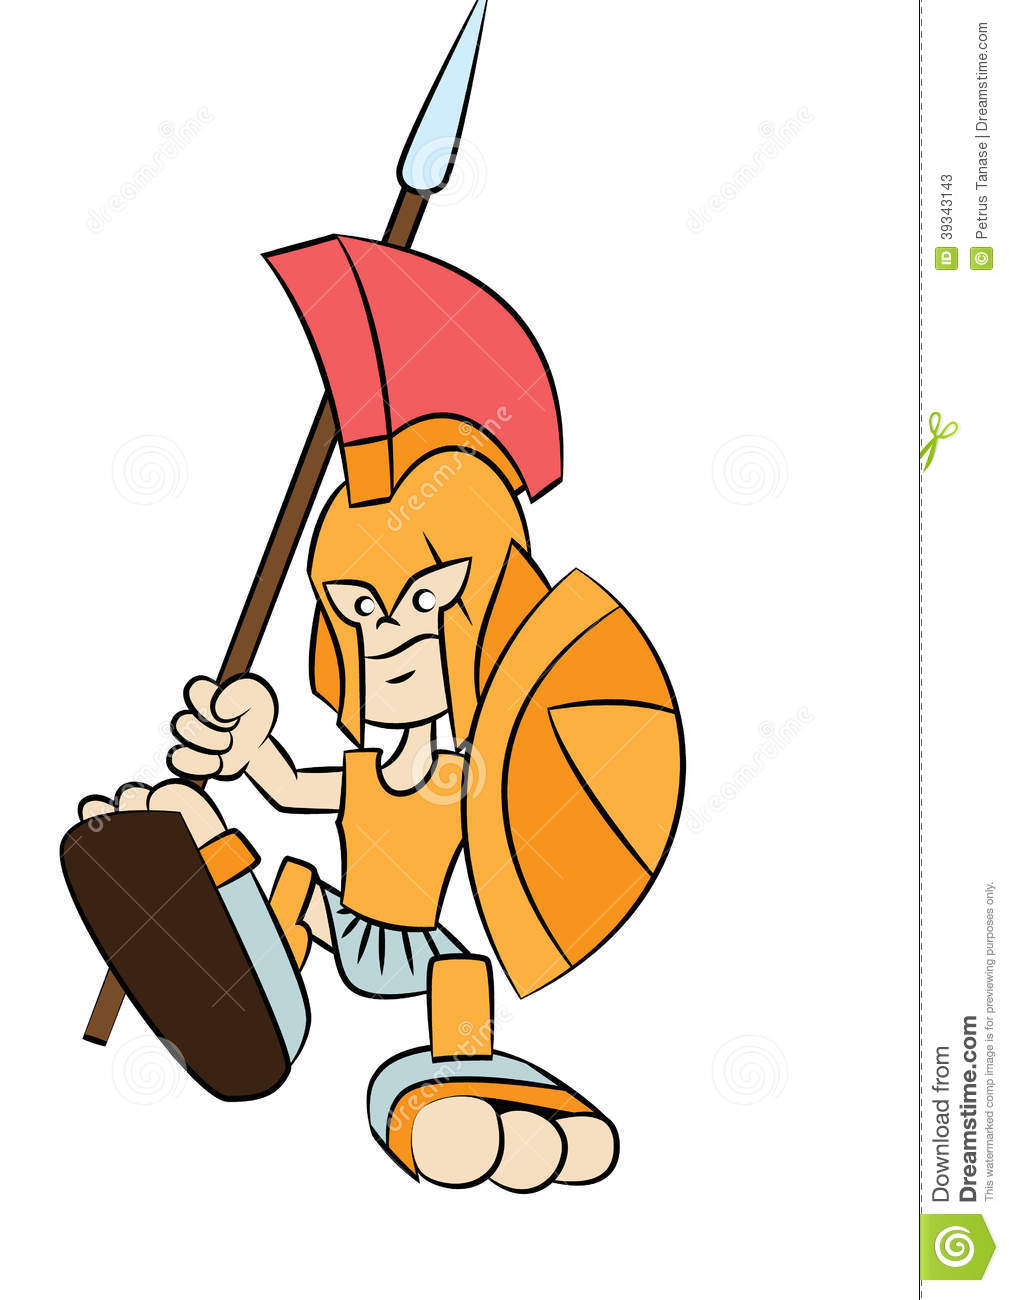 Spartan Warrior Cartoon Stock Vector - Image: 39343143